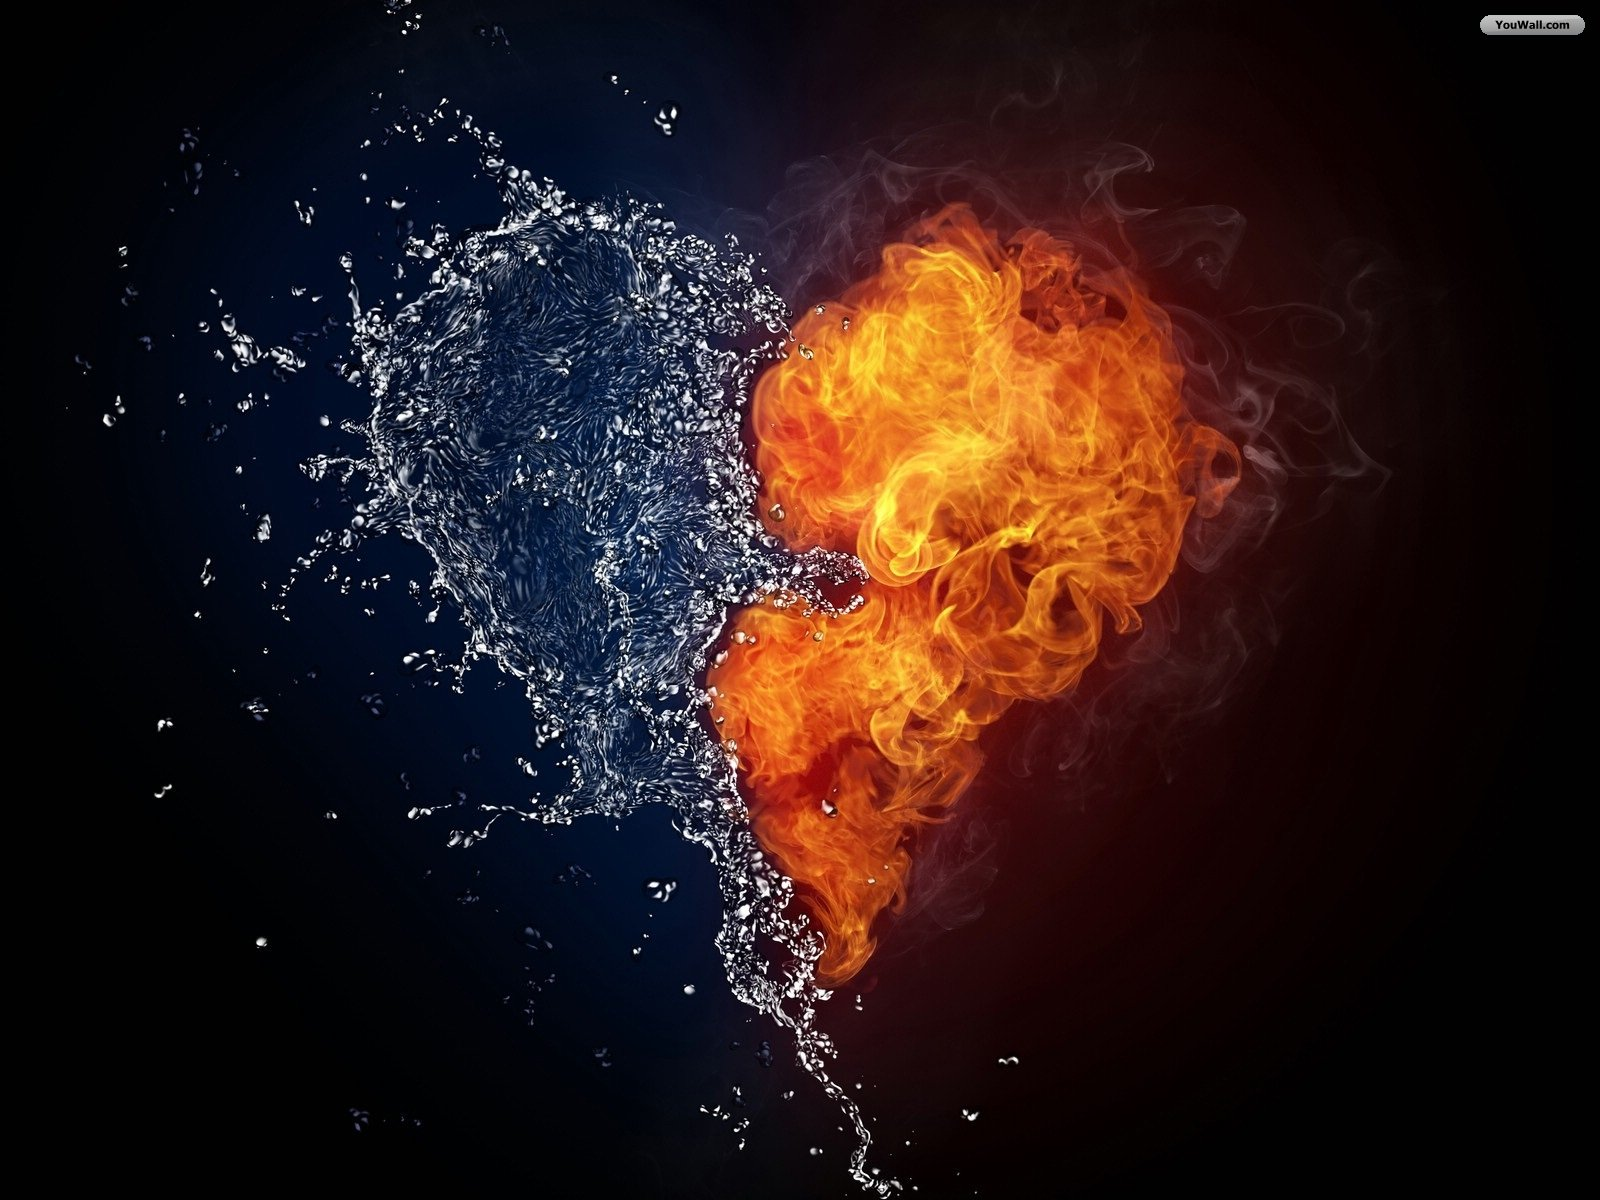 http://1.bp.blogspot.com/-A-m5HDQU53Y/TgNoH1XlujI/AAAAAAAAAlU/wp-quYMvrt4/s1600/water_and_fire_love_wallpaper_90841.jpg